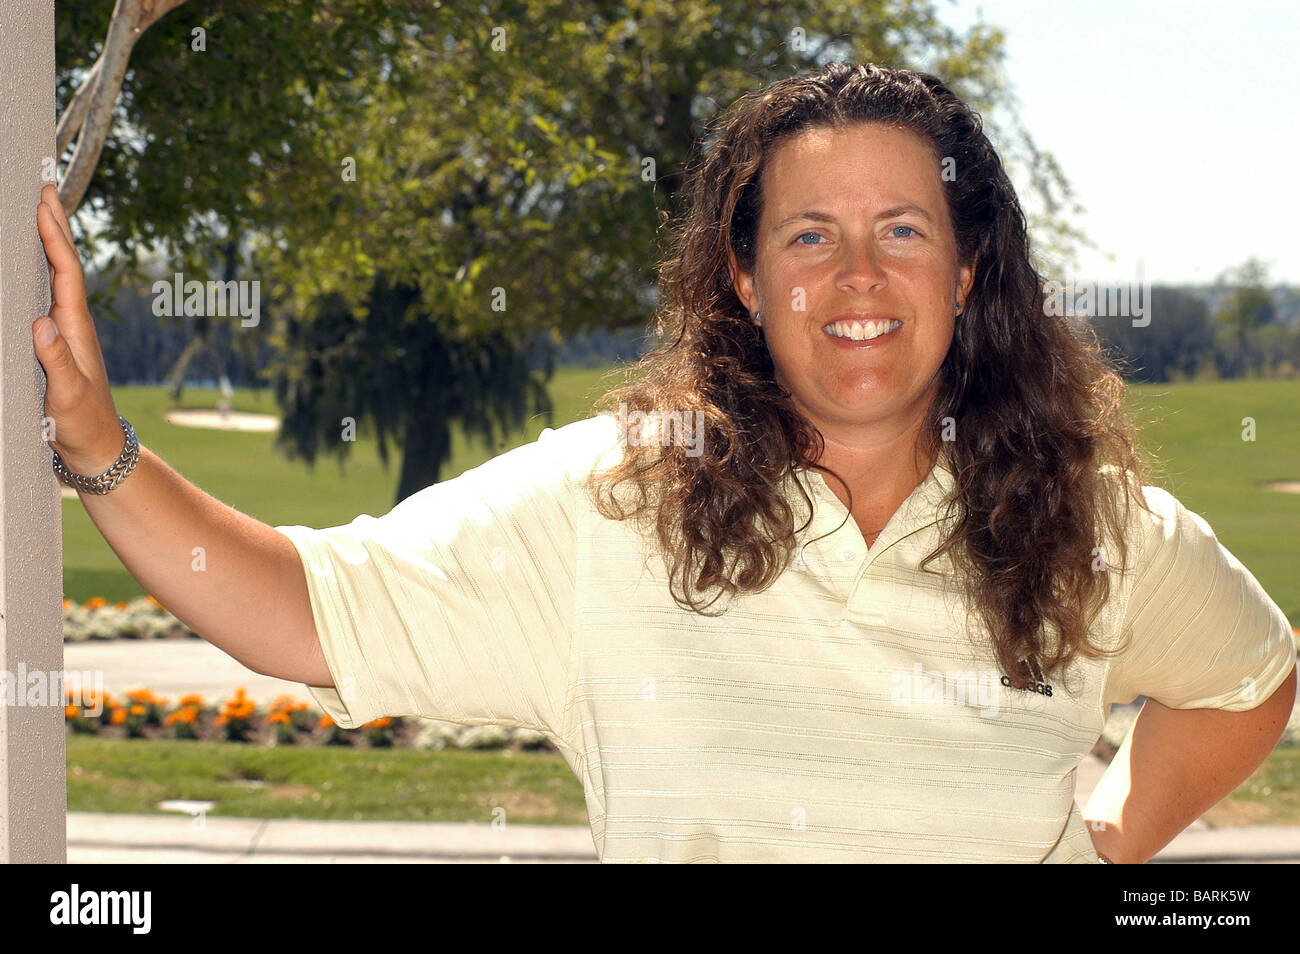 Fanny Sunesson is most noted as being the golf caddie for Nick Faldo from 1990 to 1999. Stock Photo